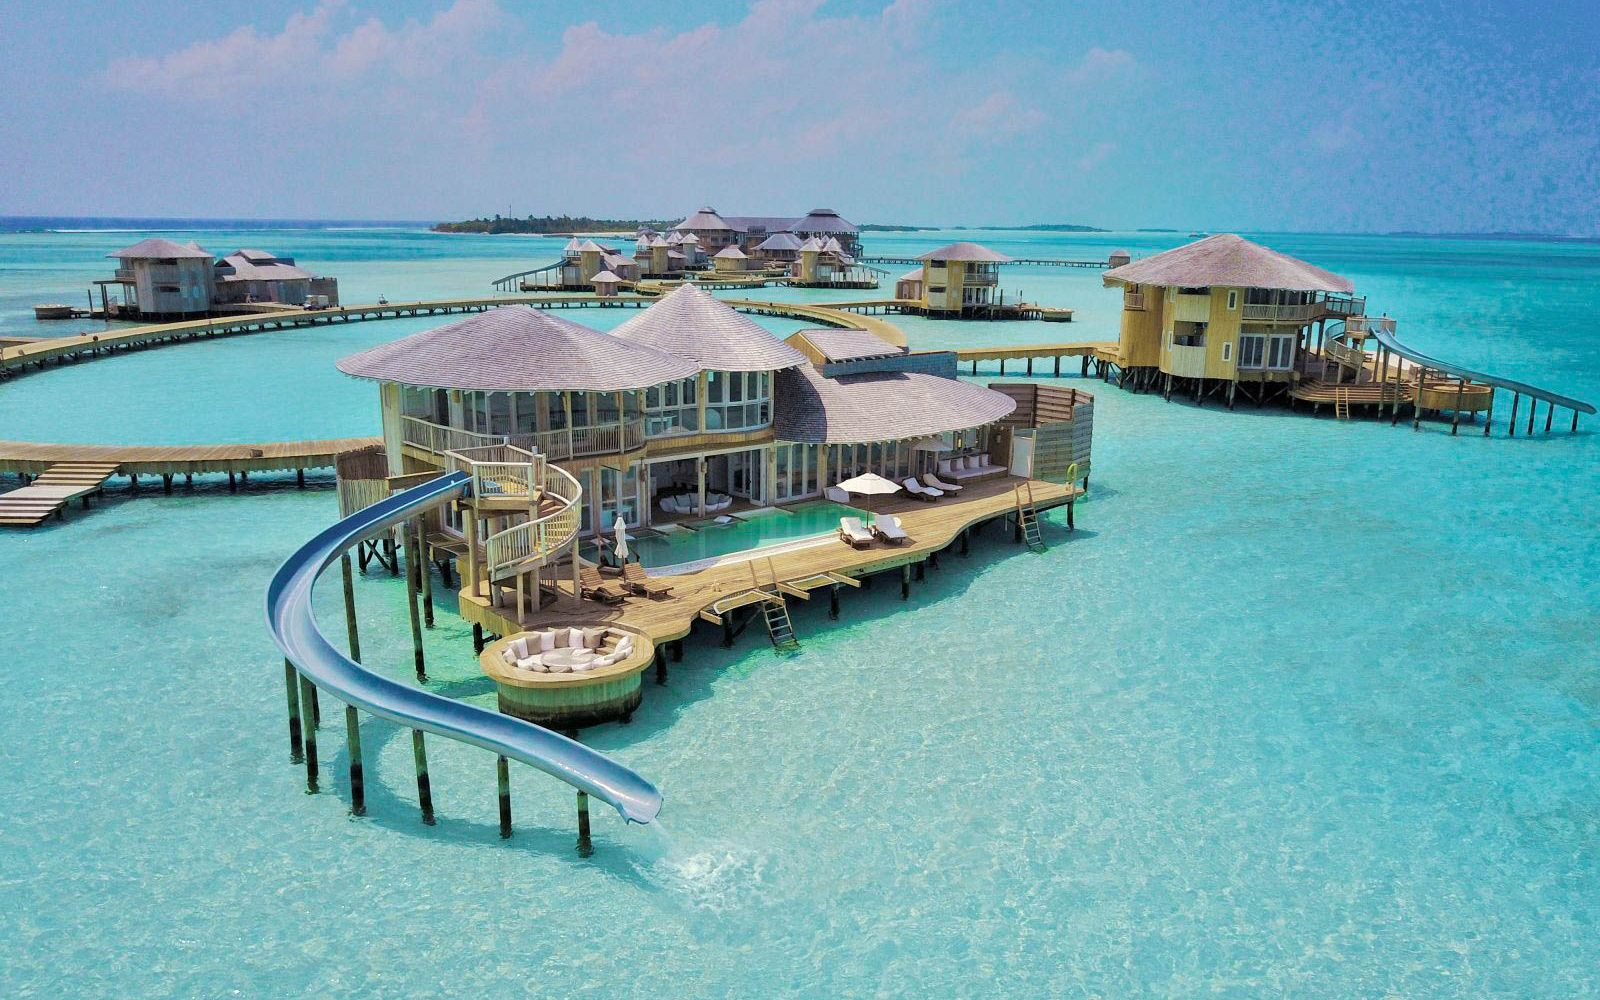 Waterslide that goes into the Indian Ocean from your villa Maldives